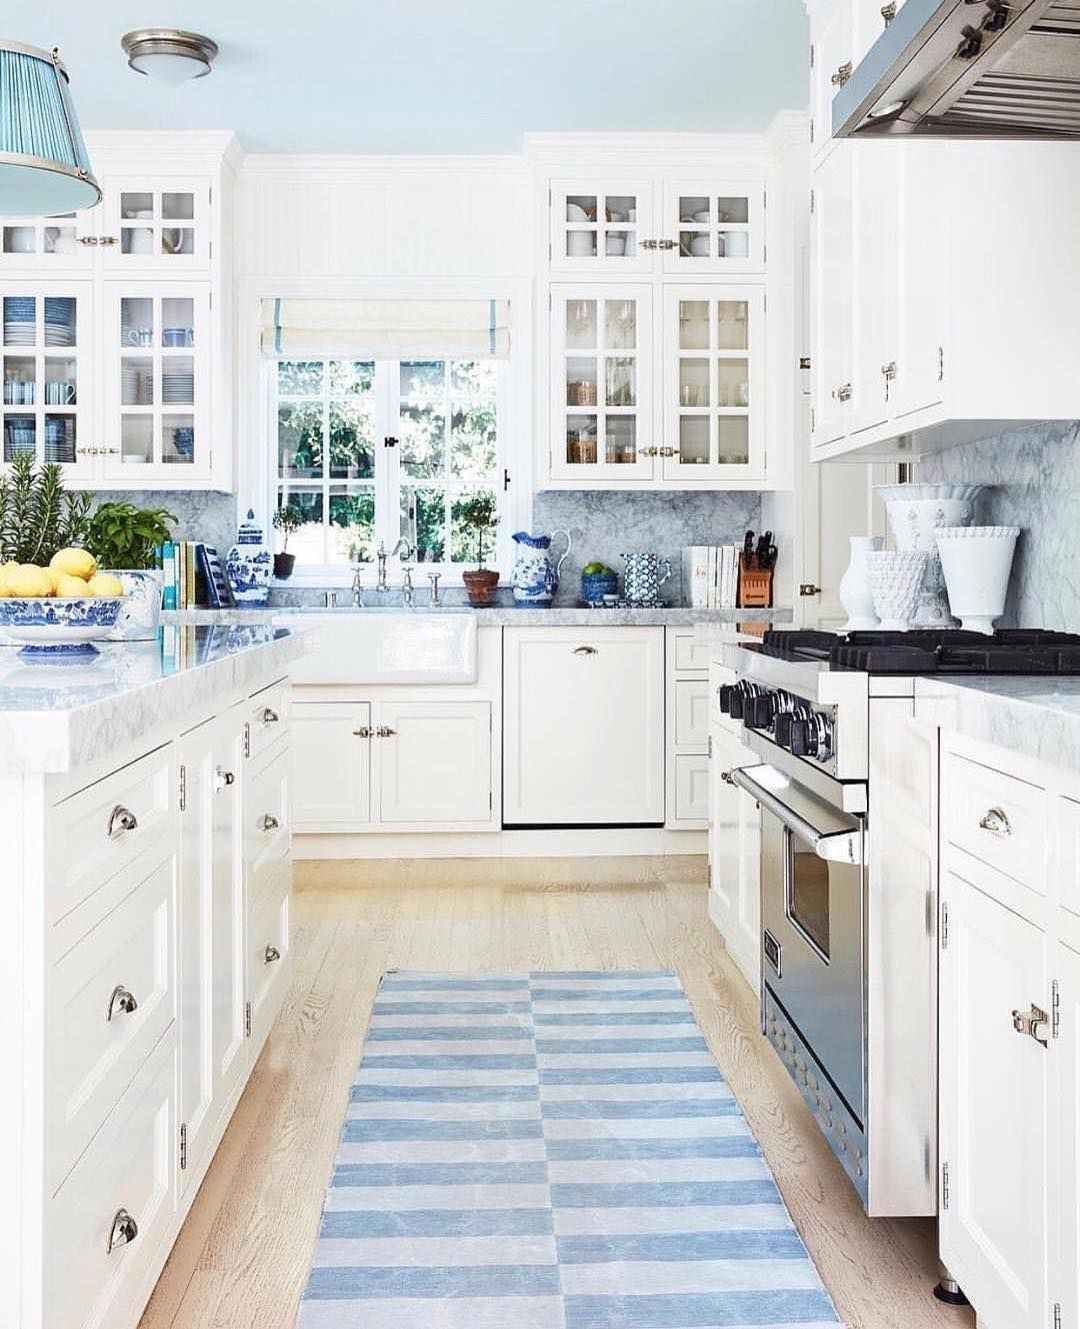 I Love The Blue And White Accessories Such Beautiful Casual Elegance In This Kitchen Country Farmhouse Hamptons Designs